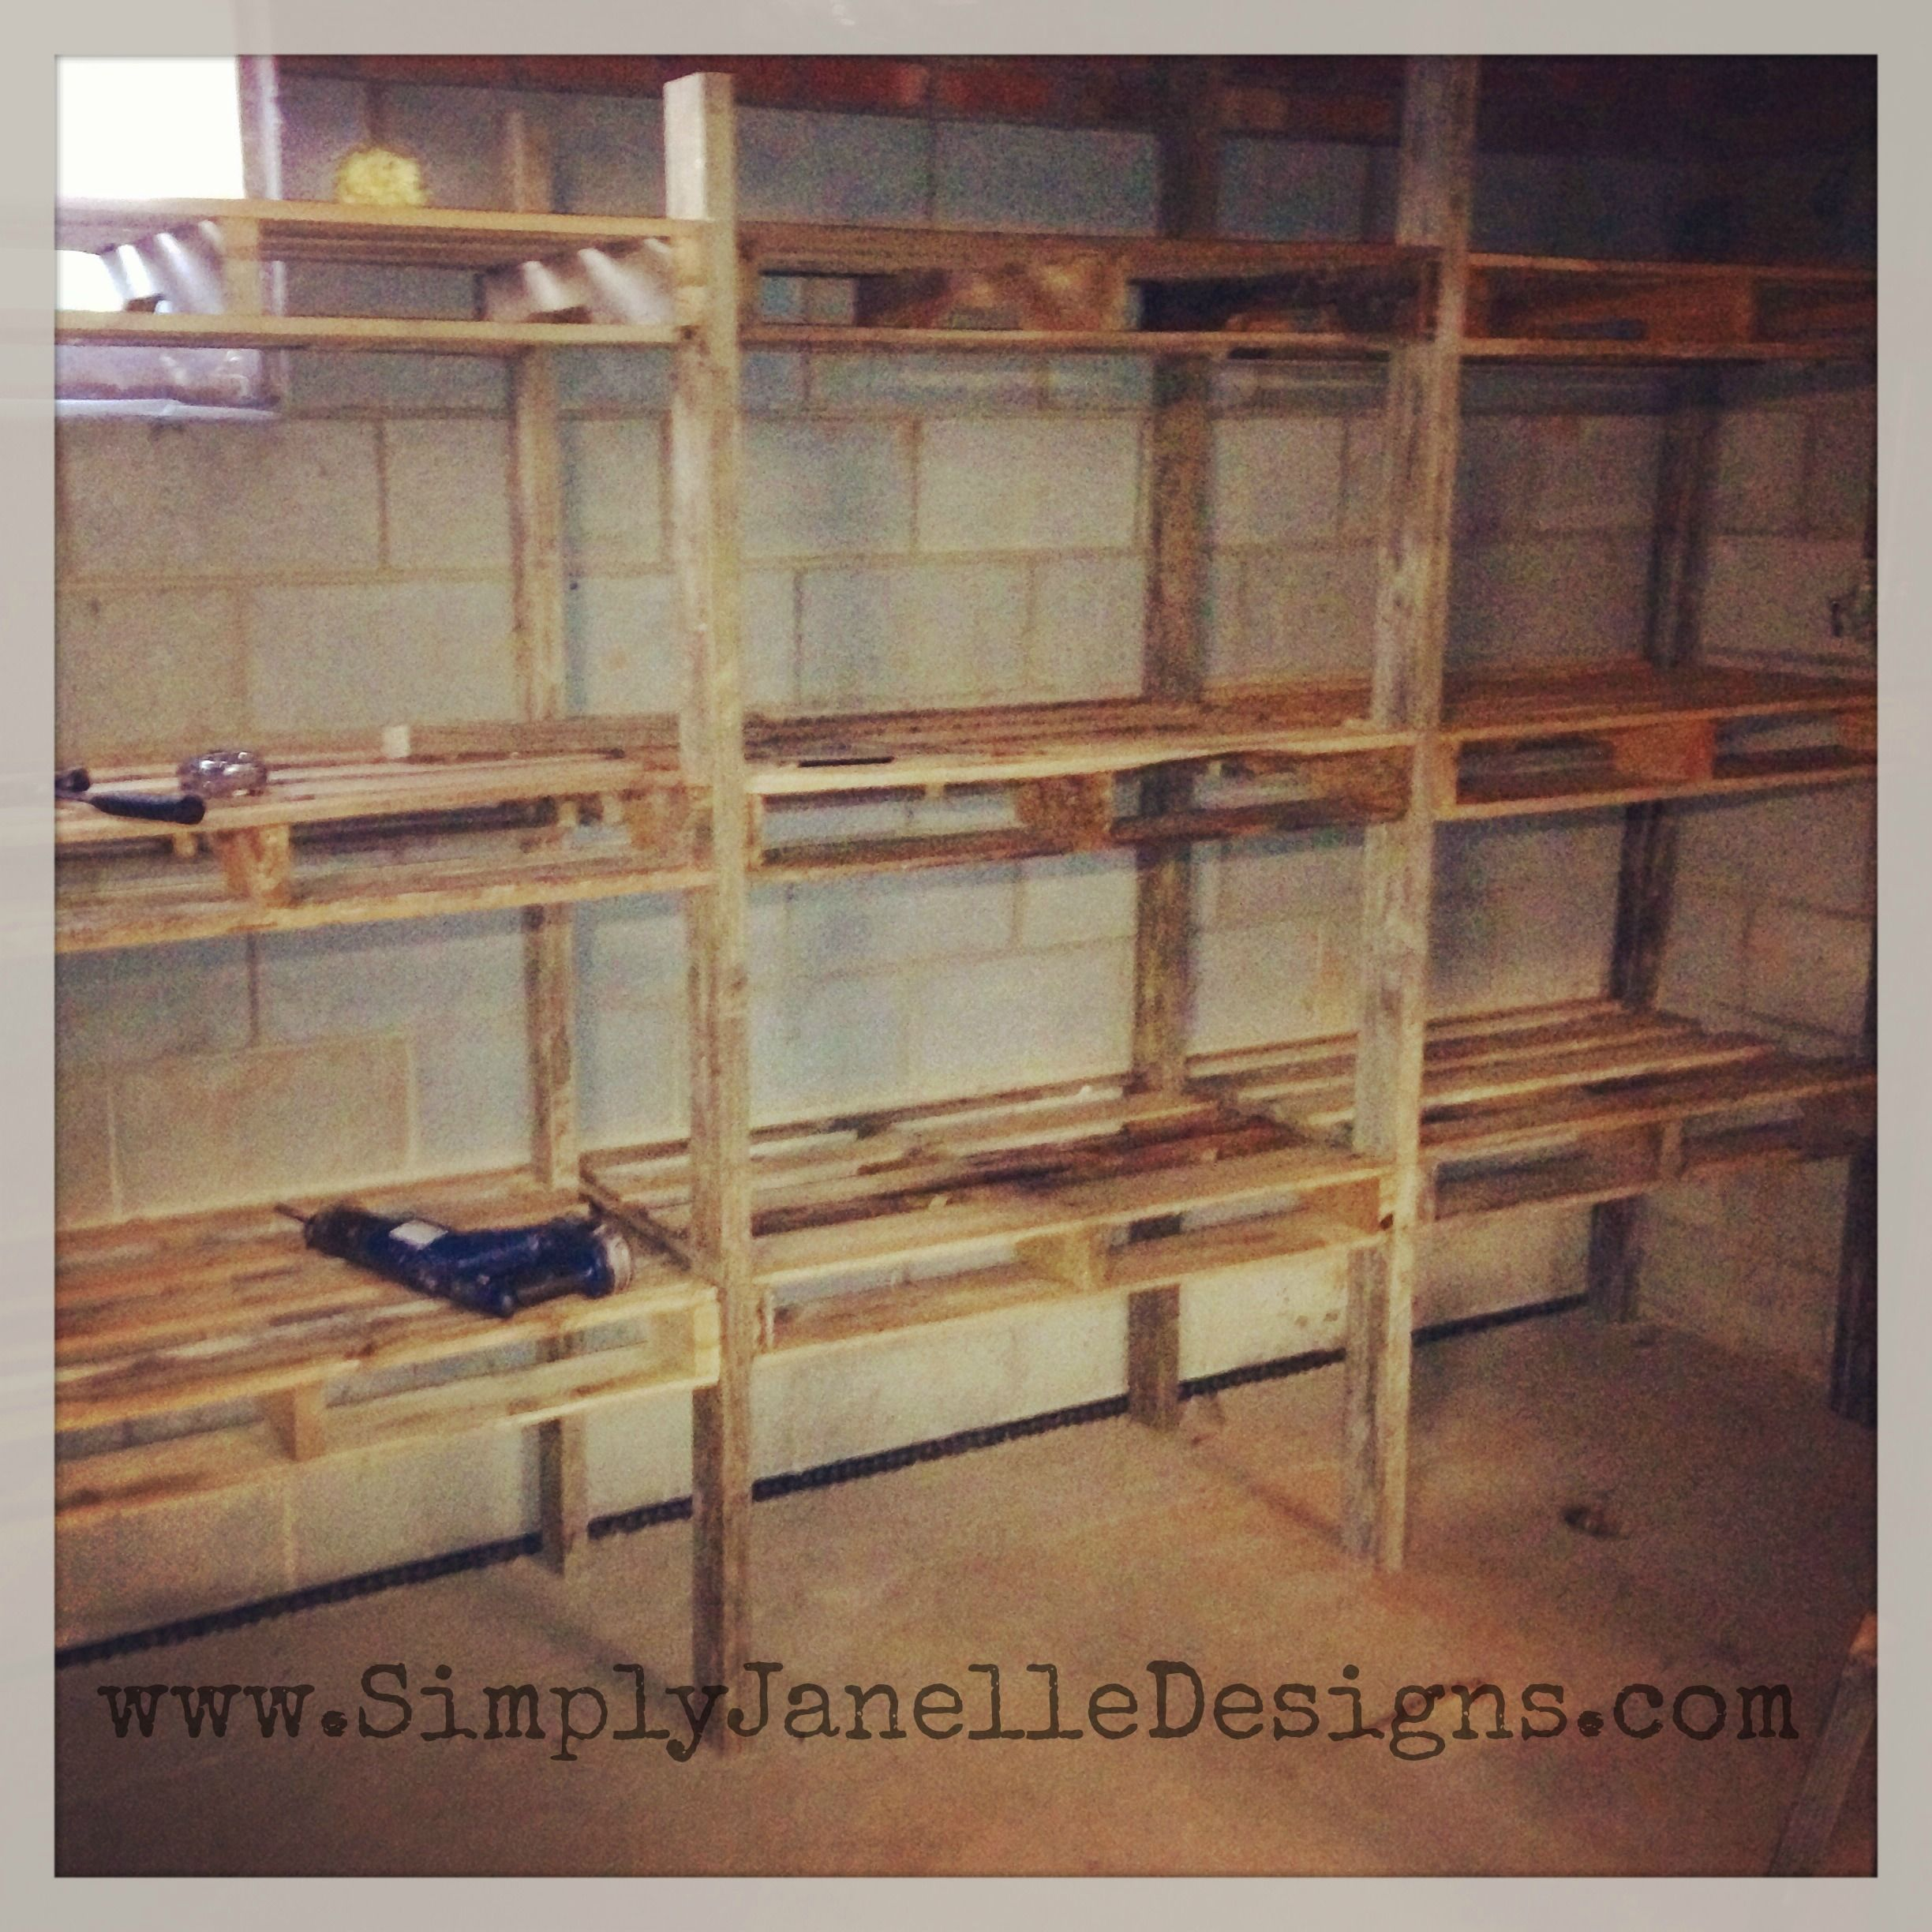 pallet shelves in our basement | simply janelle designs | projects